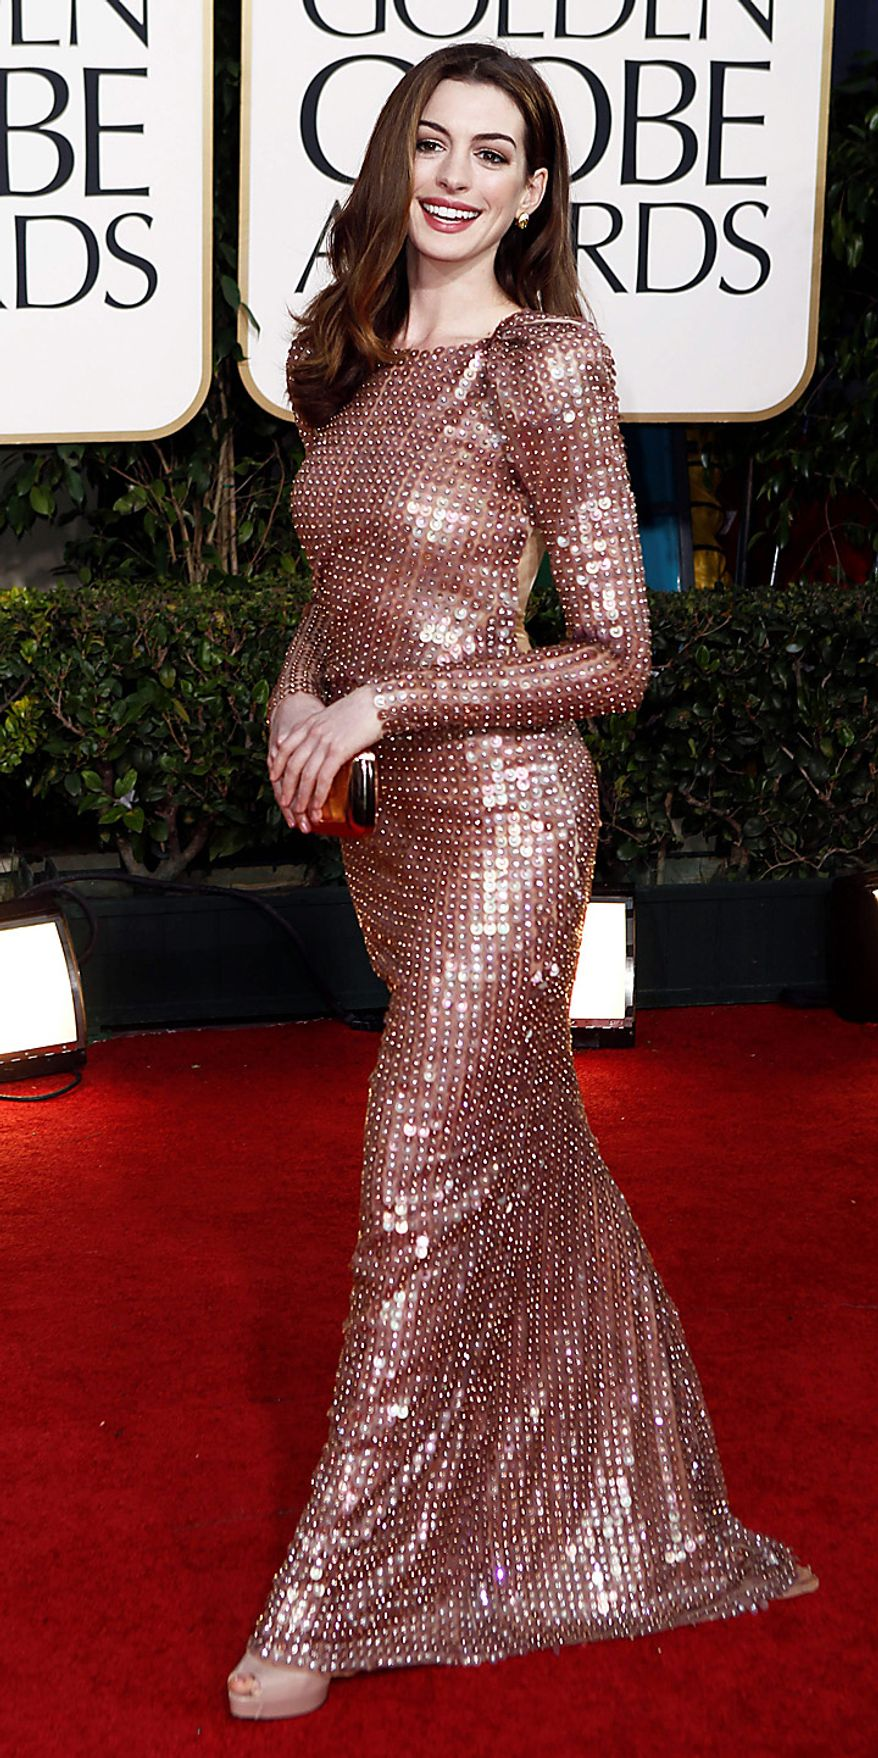 Anne Hathaway arrives for the Golden Globe Awards Sunday, Jan. 16, 2011, in Beverly Hills, Calif. (AP Photo/Matt Sayles)